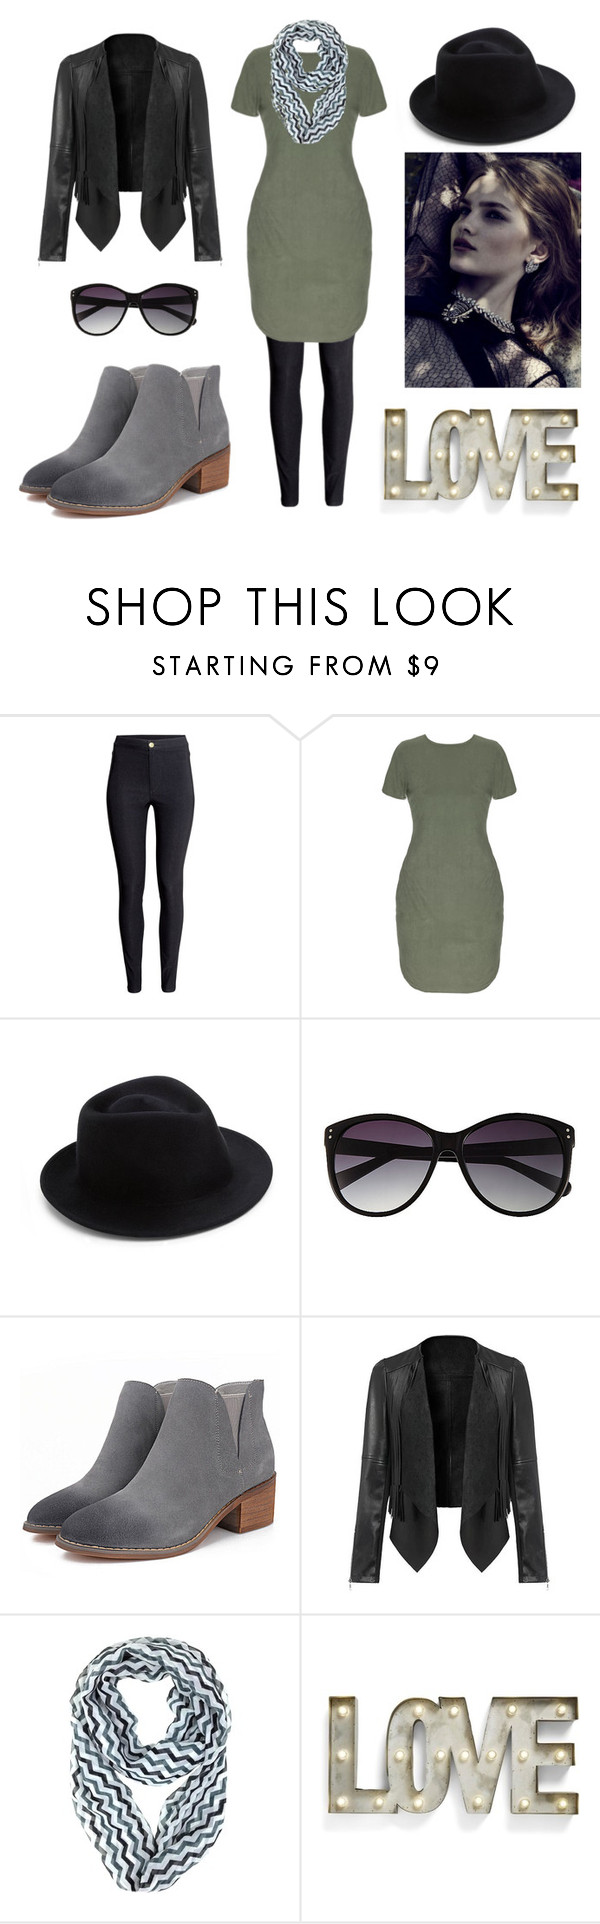 """""""Ombre Ankle Booties"""" by aowens99 ❤ liked on Polyvore featuring H&M, Eugenia Kim, Vince Camuto and Creative Co-op"""